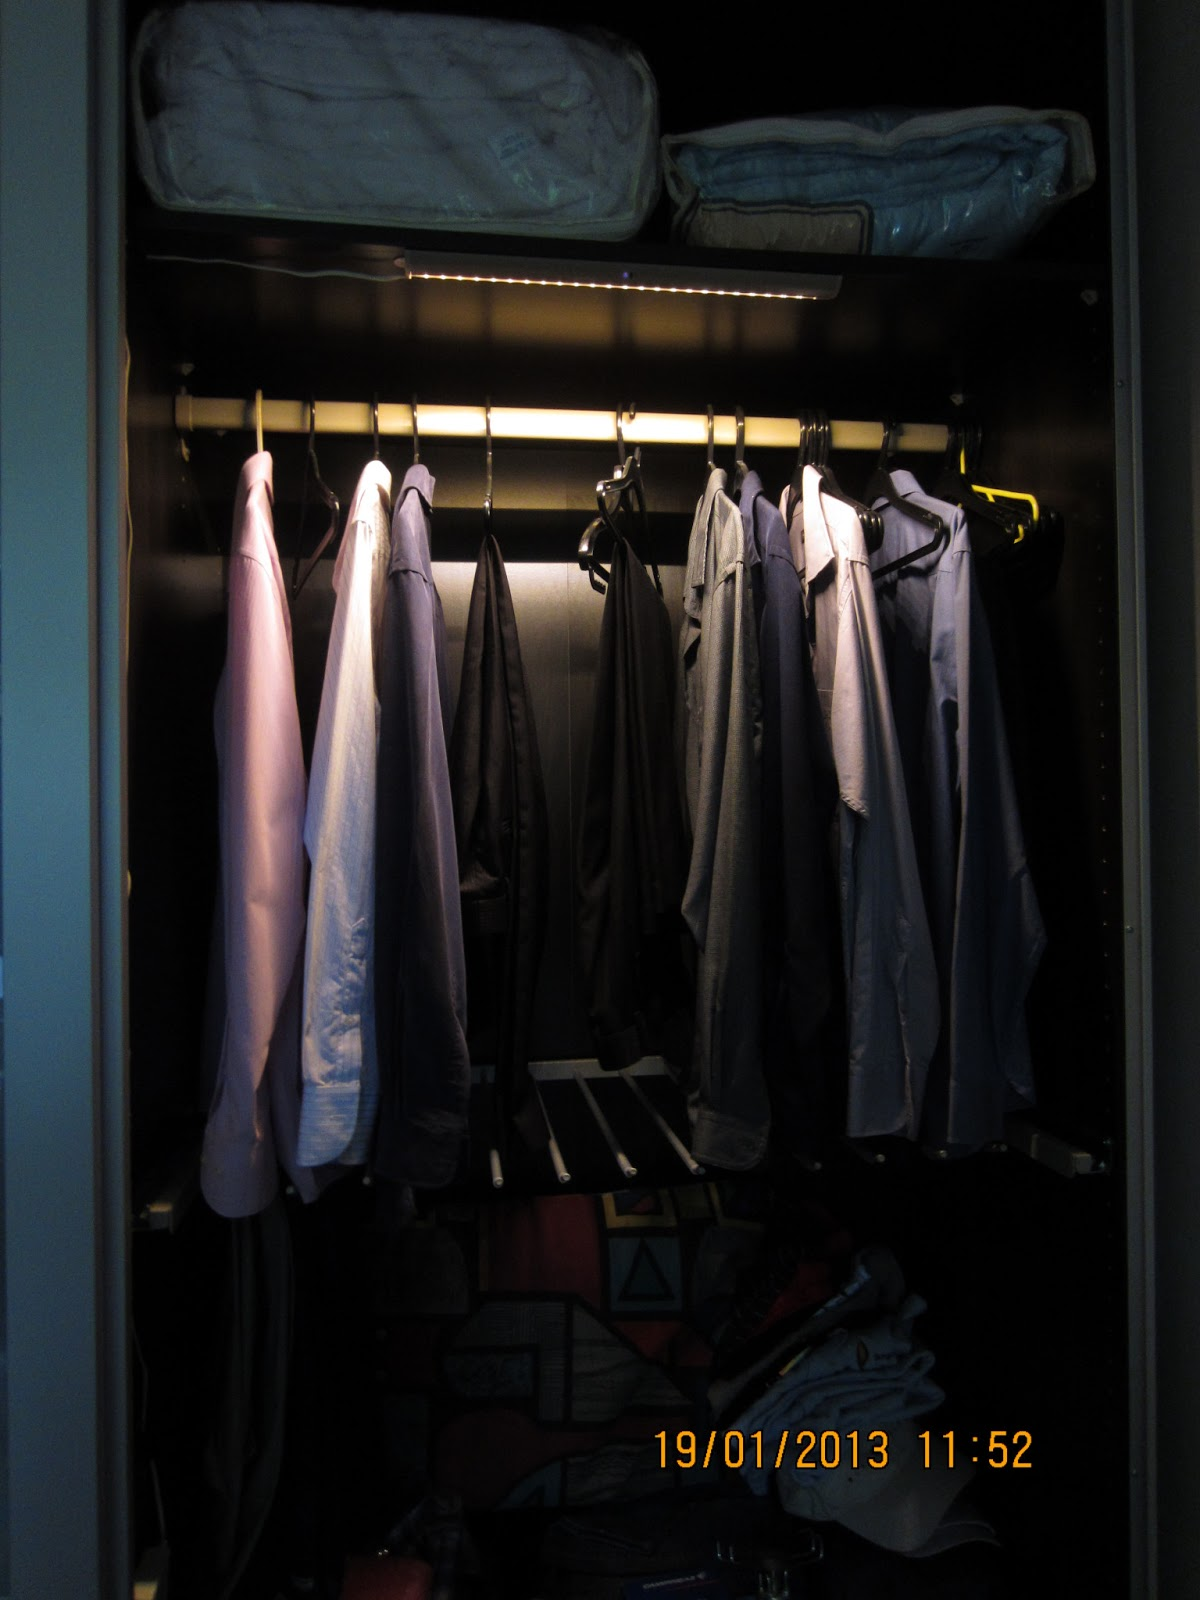 ikea wardrobe lighting. It Will Definitely Satisfy Anyone Looking For A Quality Drawer Light. However, I Don\u0027t Like The Fact That They Did Not Carry Idea Of Energy Efficiency Ikea Wardrobe Lighting P